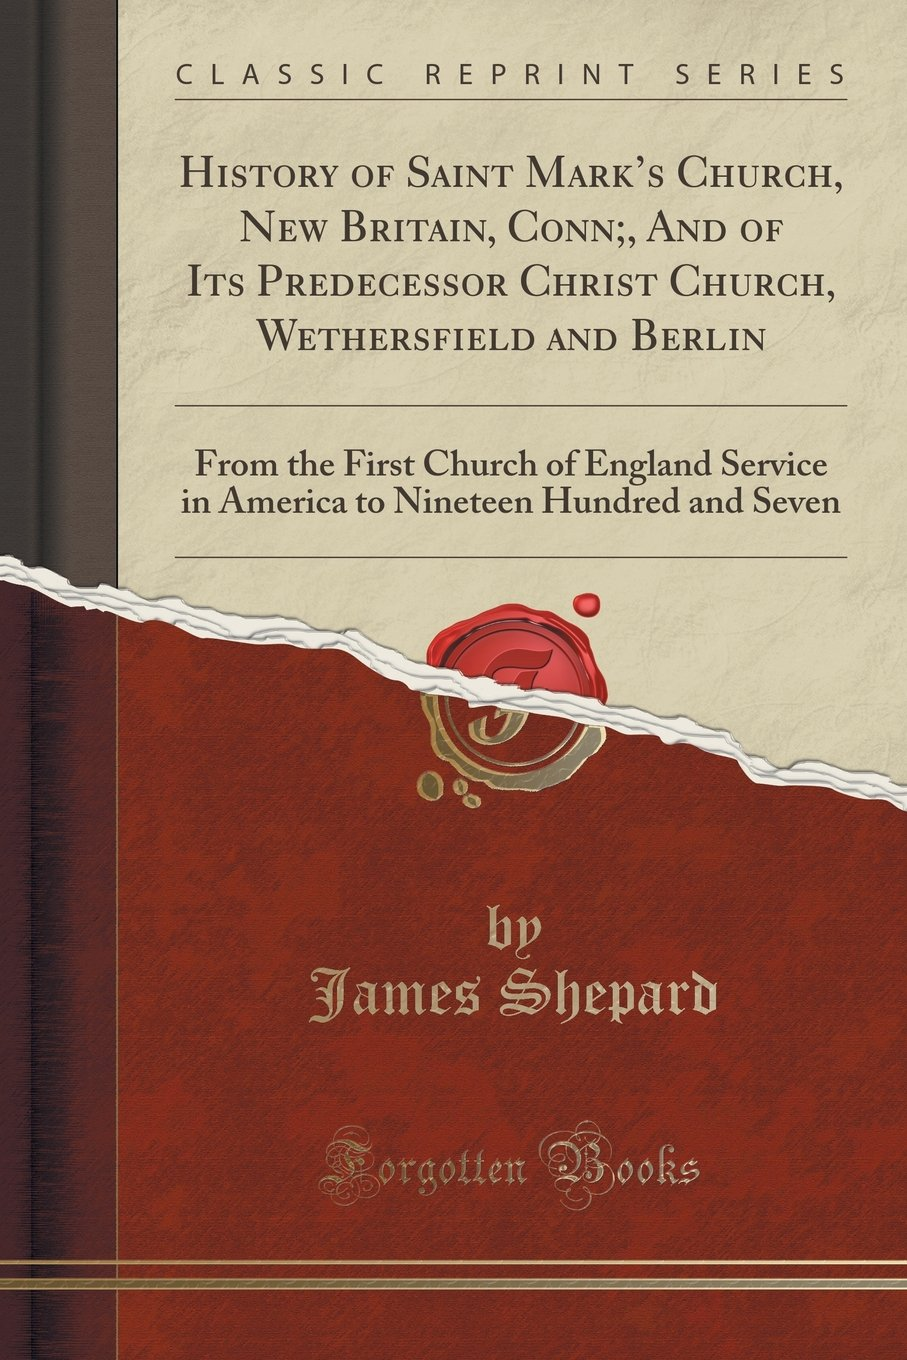 History of Saint Mark's Church, New Britain, Conn;, And of Its Predecessor Christ Church, Wethersfield and Berlin: From the First Church of England ... Nineteen Hundred and Seven (Classic Reprint) PDF Text fb2 ebook